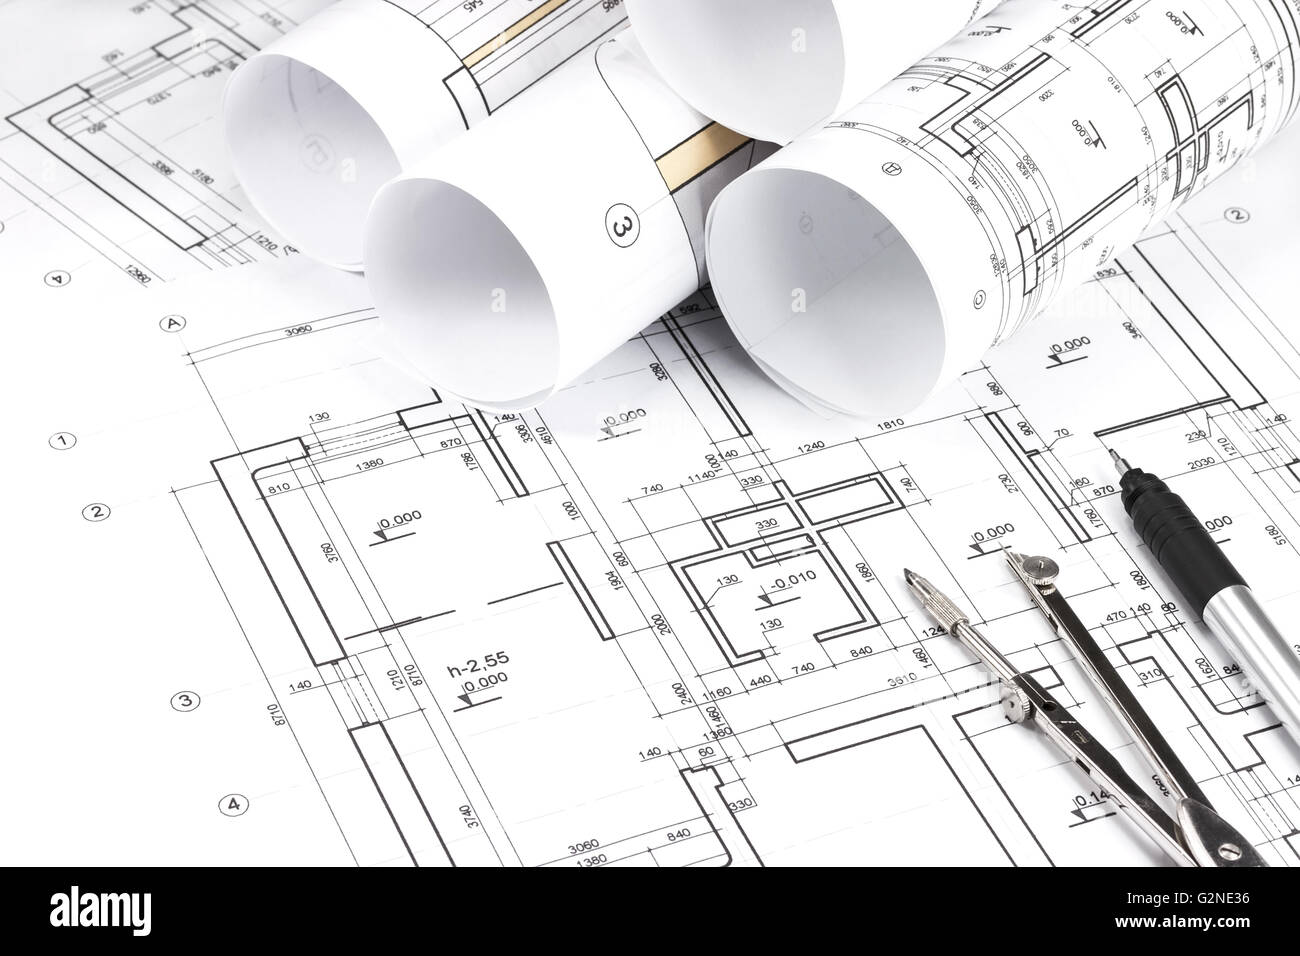 Architectural Drawing Background architectural background with rolls of technical drawings and work